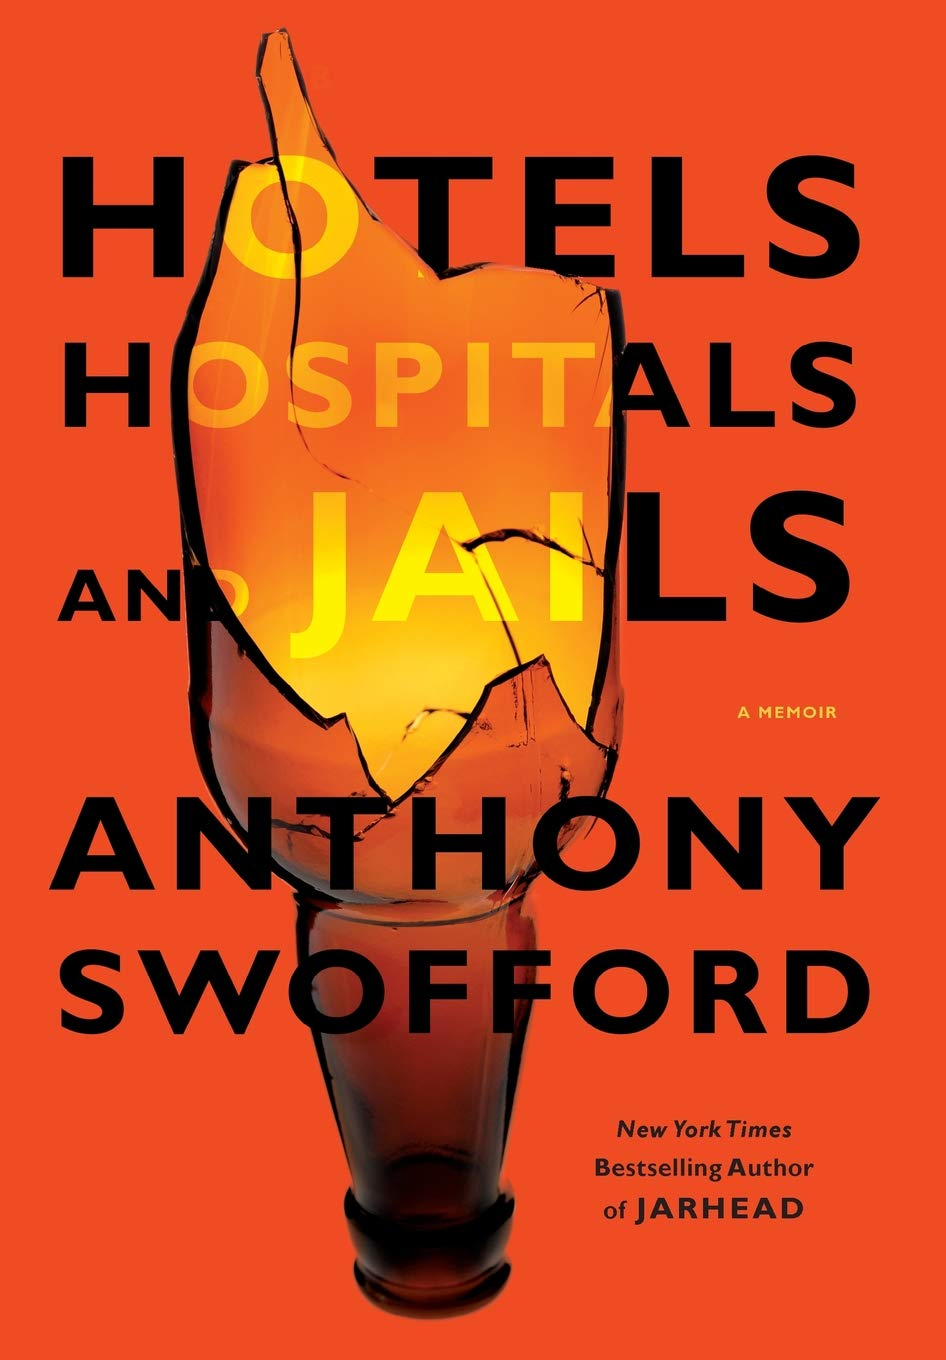 Hotels hospitals and jails pdf free. download full